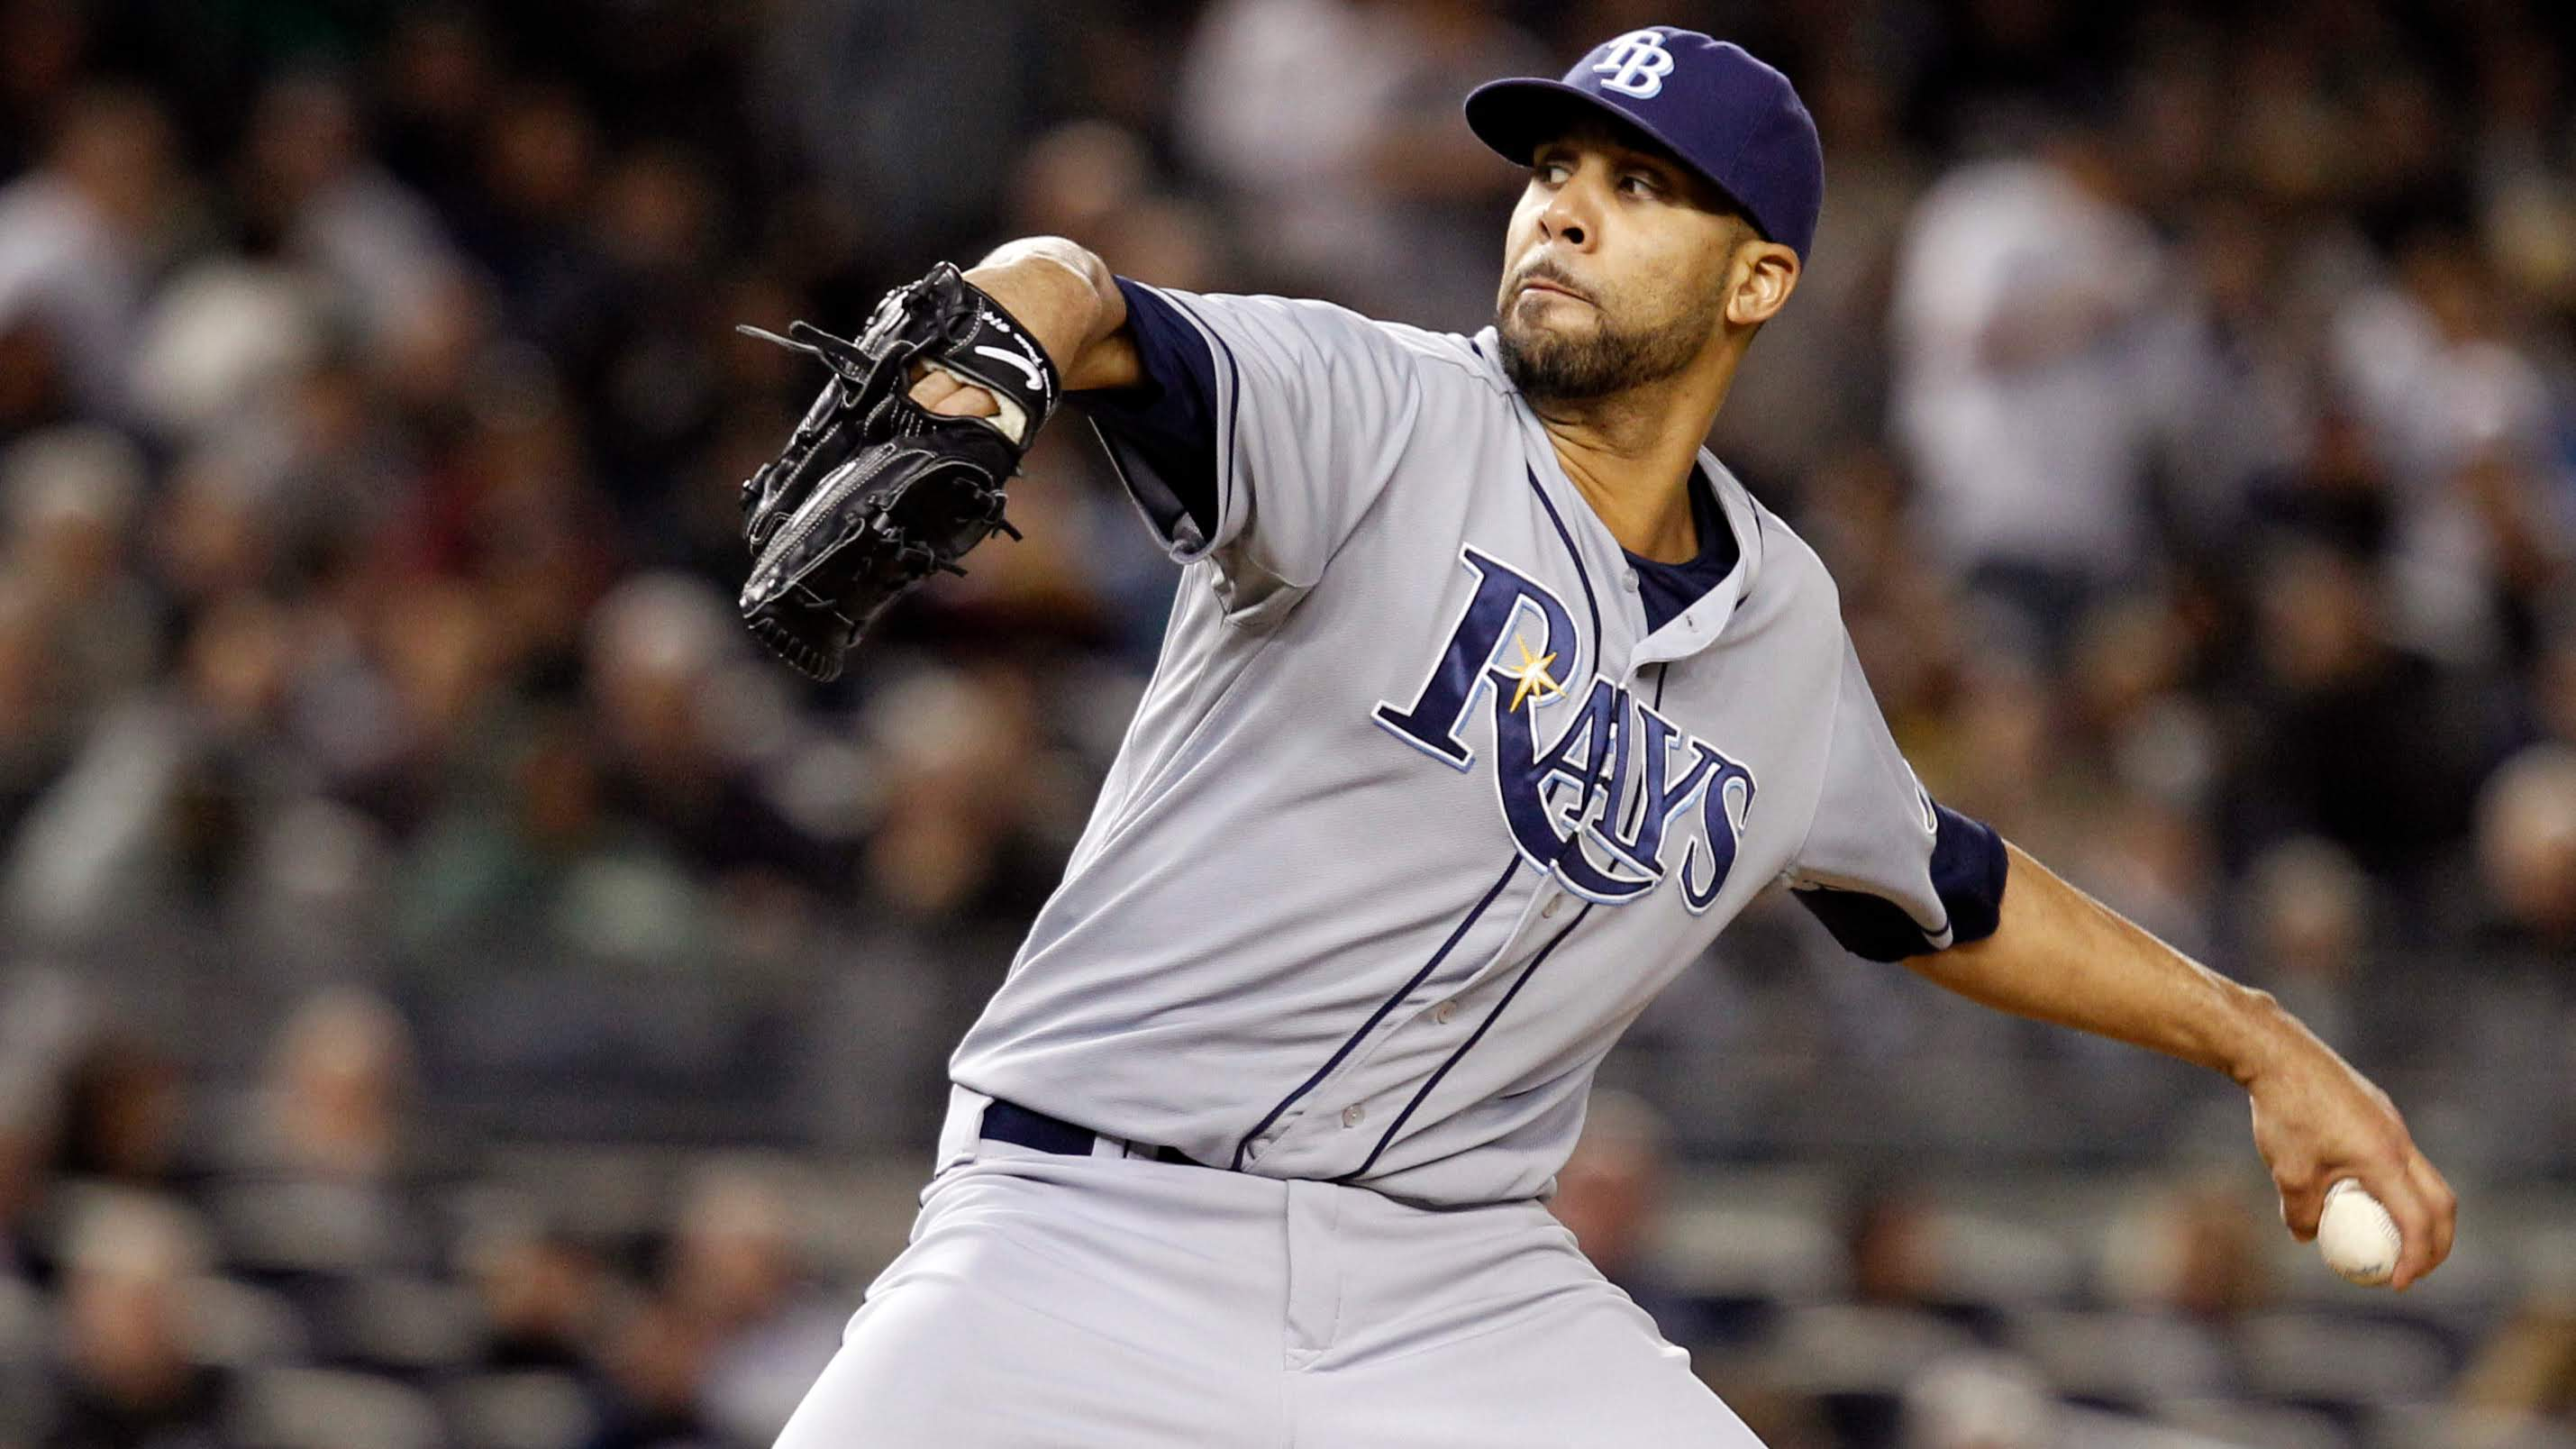 As MLB trade deadline looms, ESPN looks at Rays' most